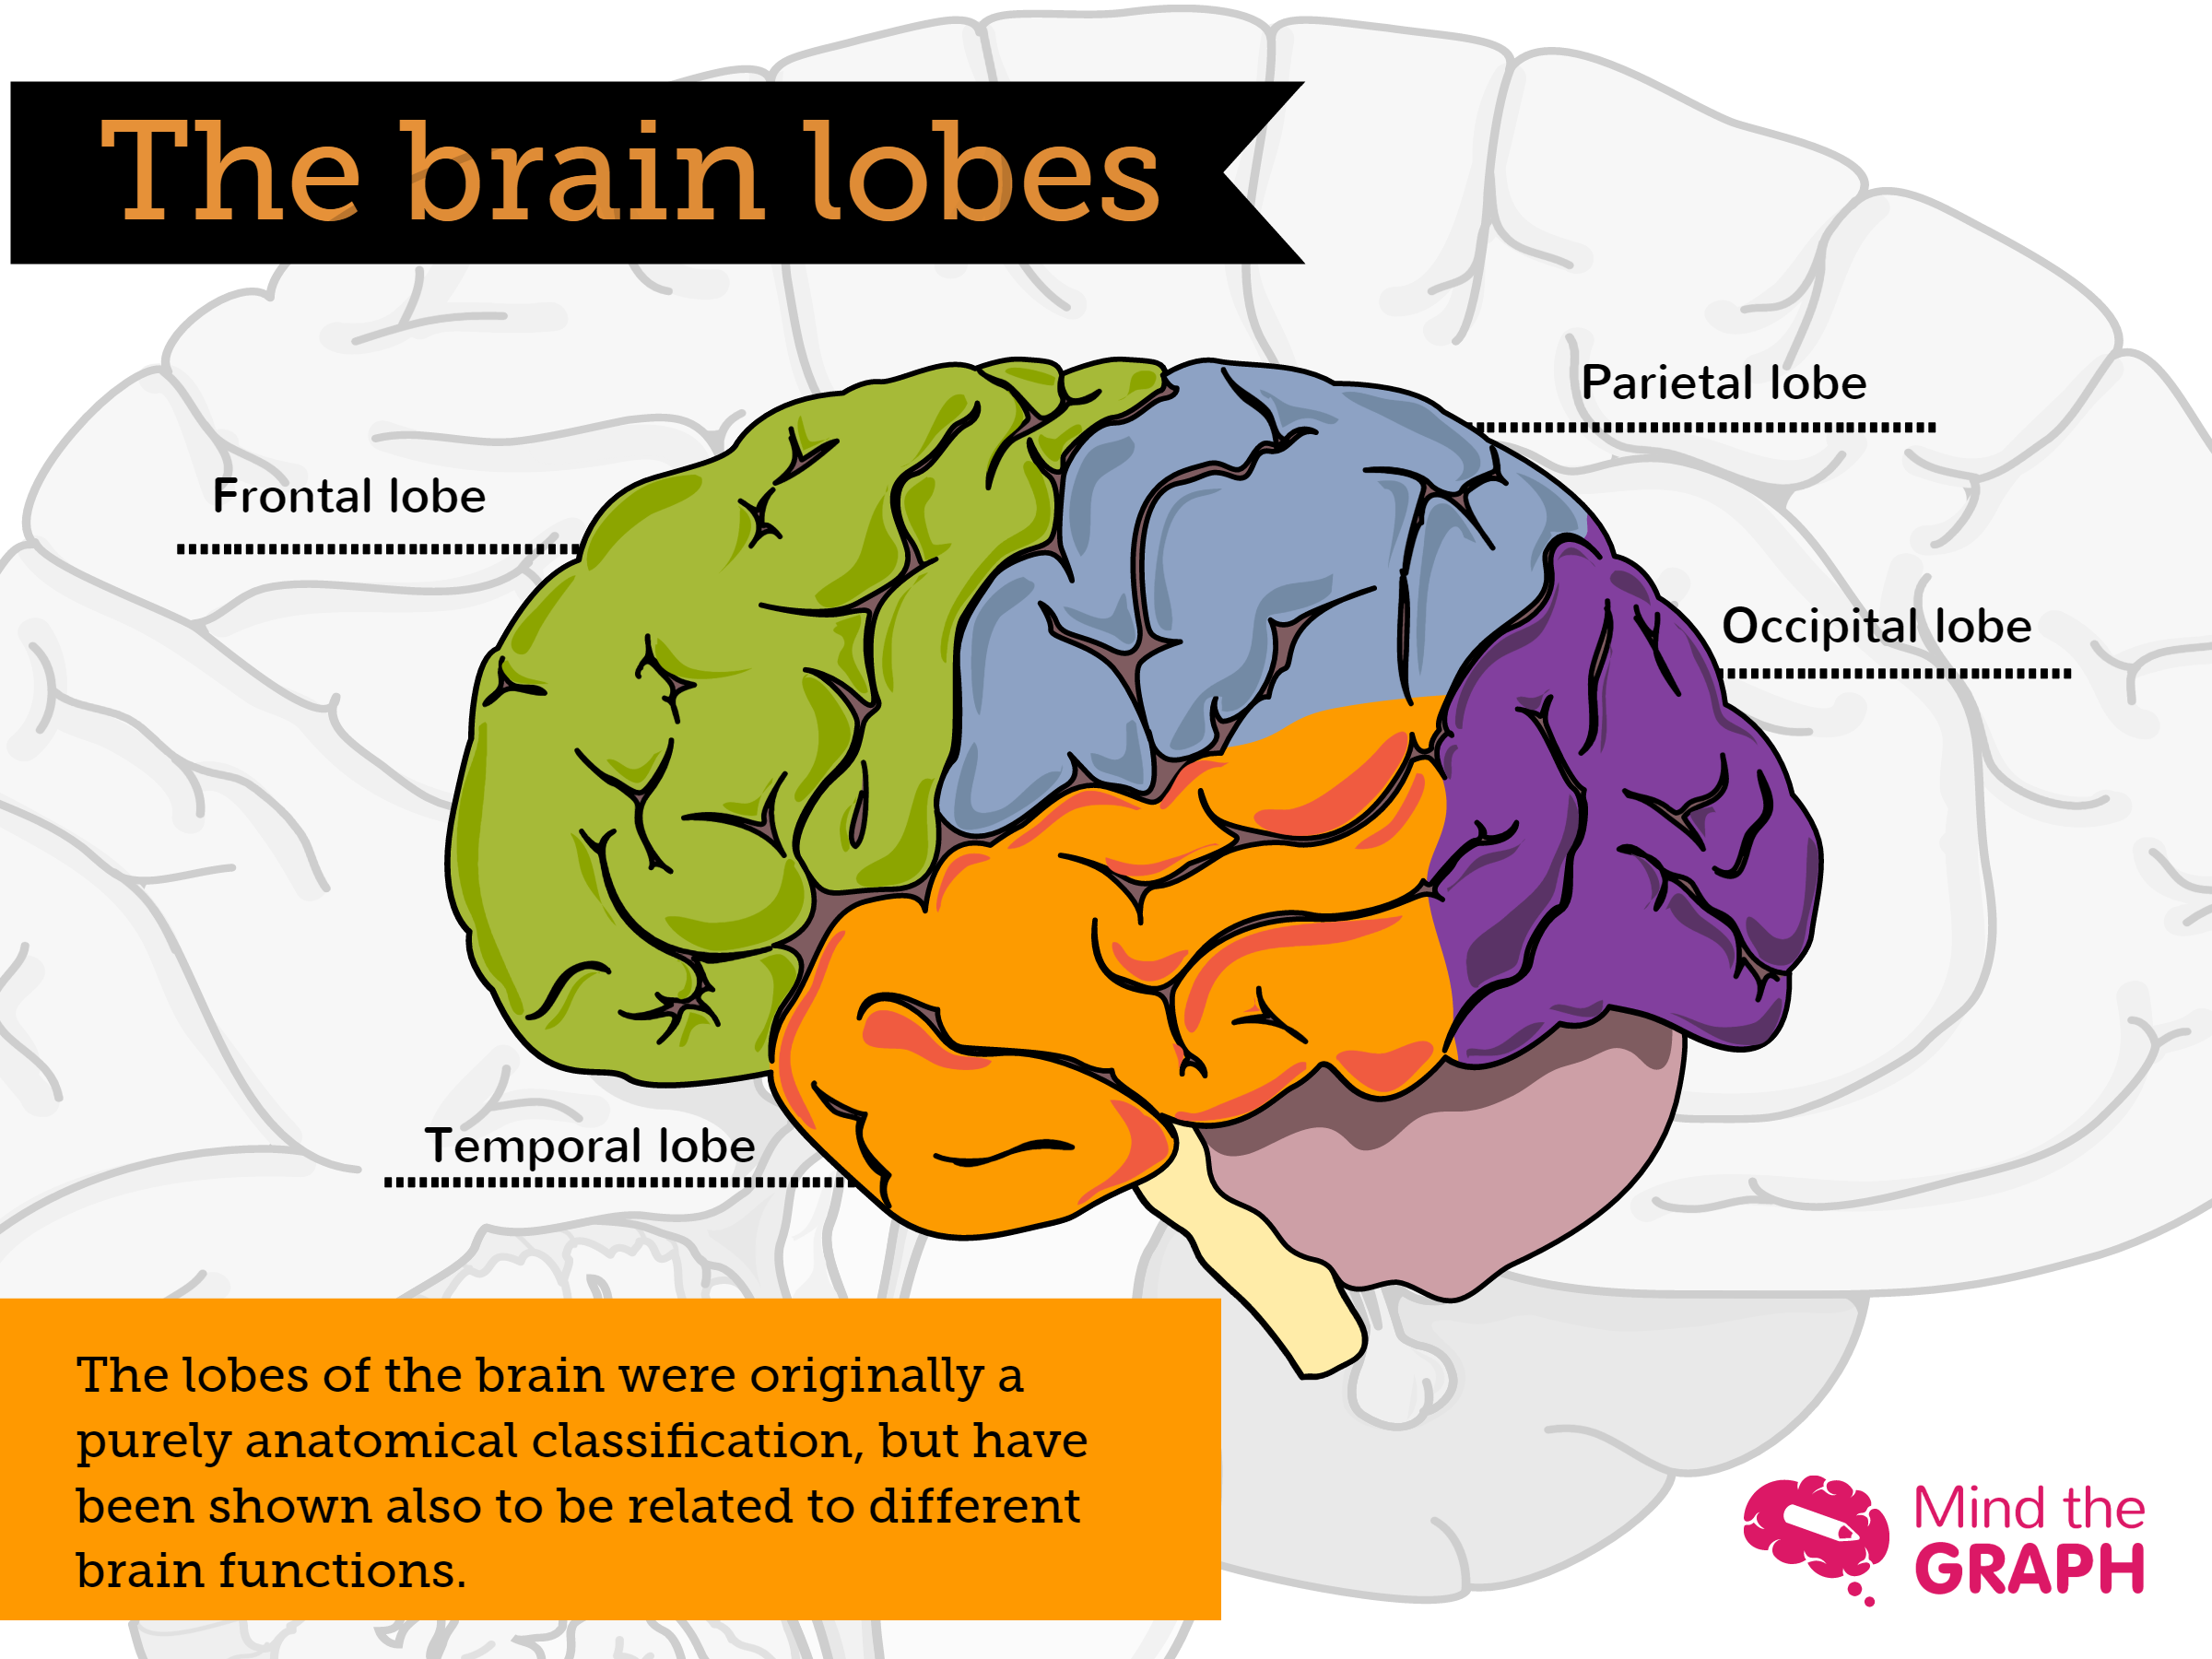 The brain lobes